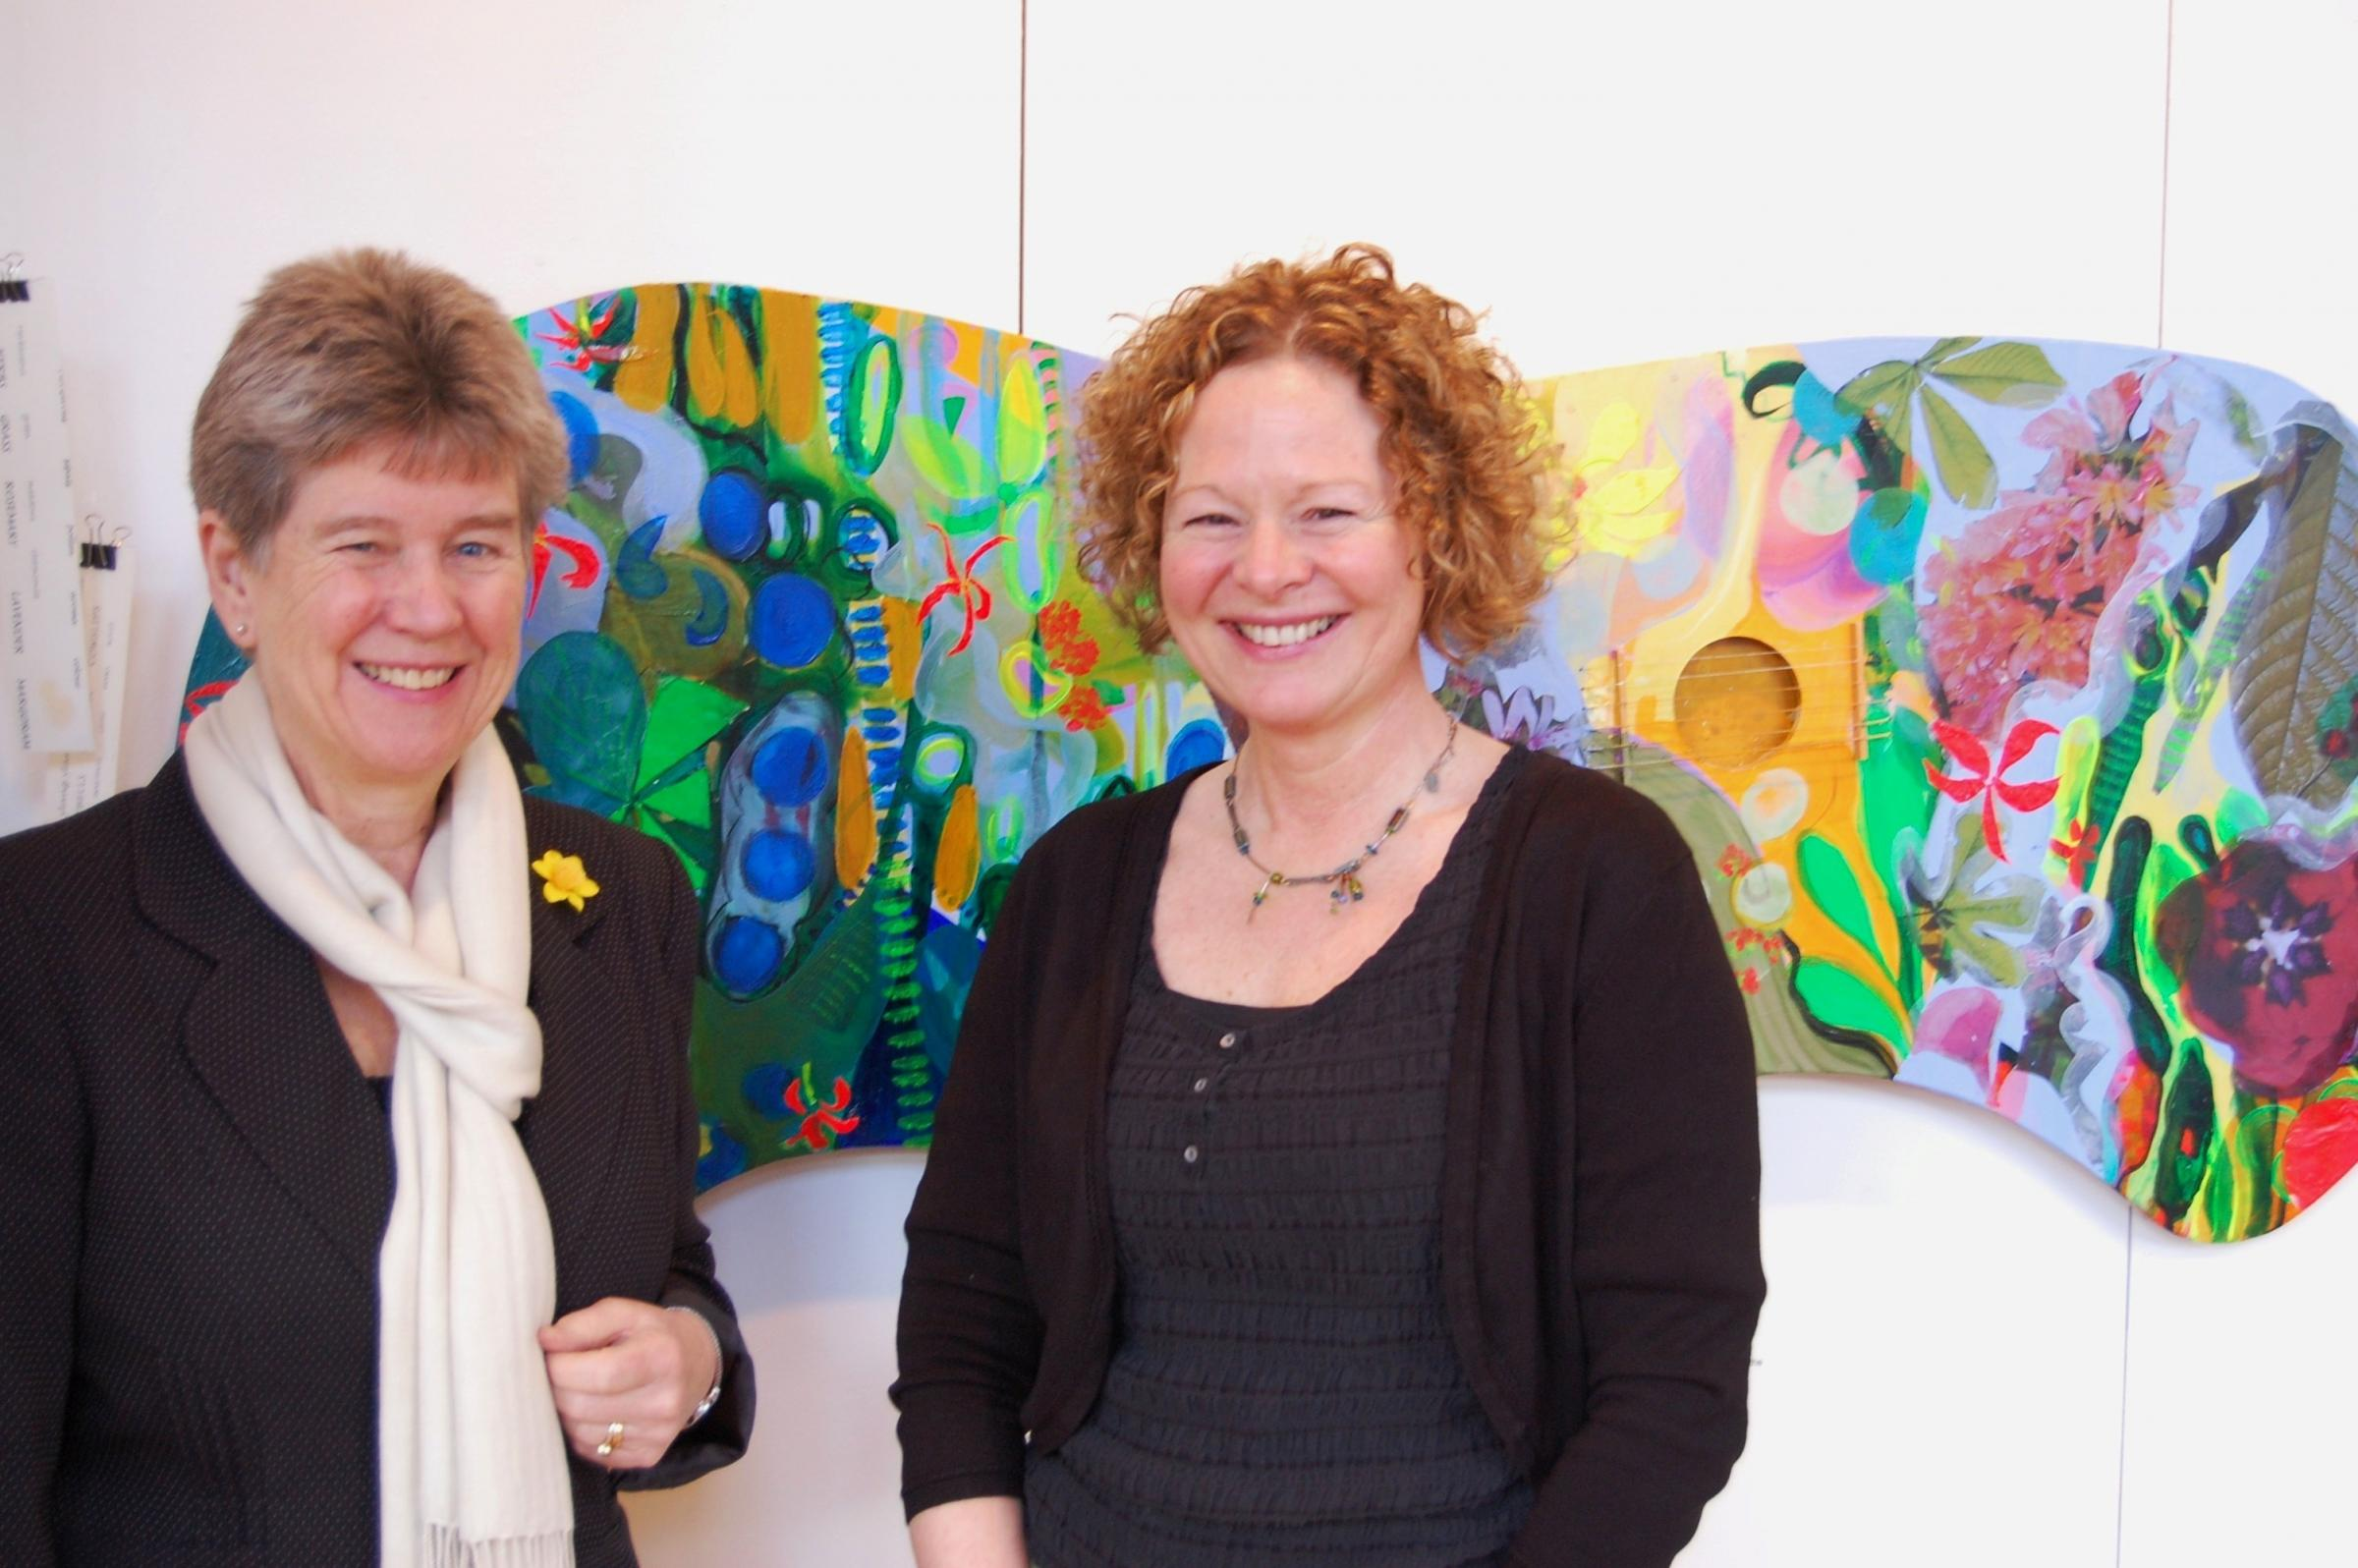 PROJECT: Jane Hutt AM with Dinas Powys artist Melanie Wotton at the Dementia Art Exhibition at the Pierhead Gallery, Cardiff Bay. (4038408)